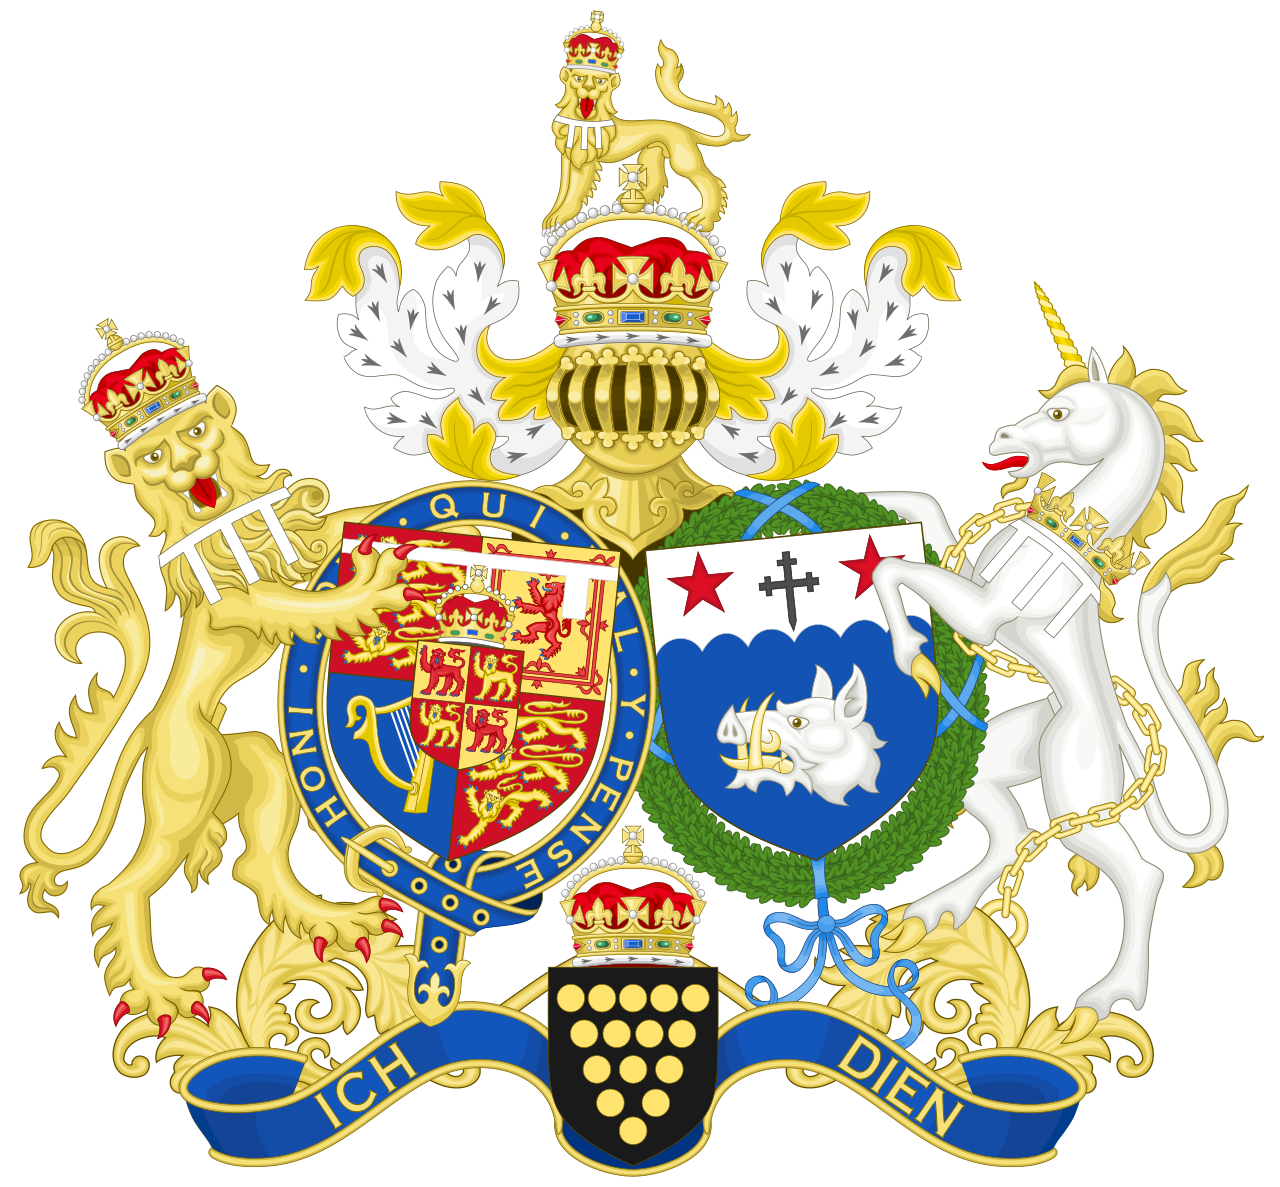 Coat of arms of the Prince of Wales